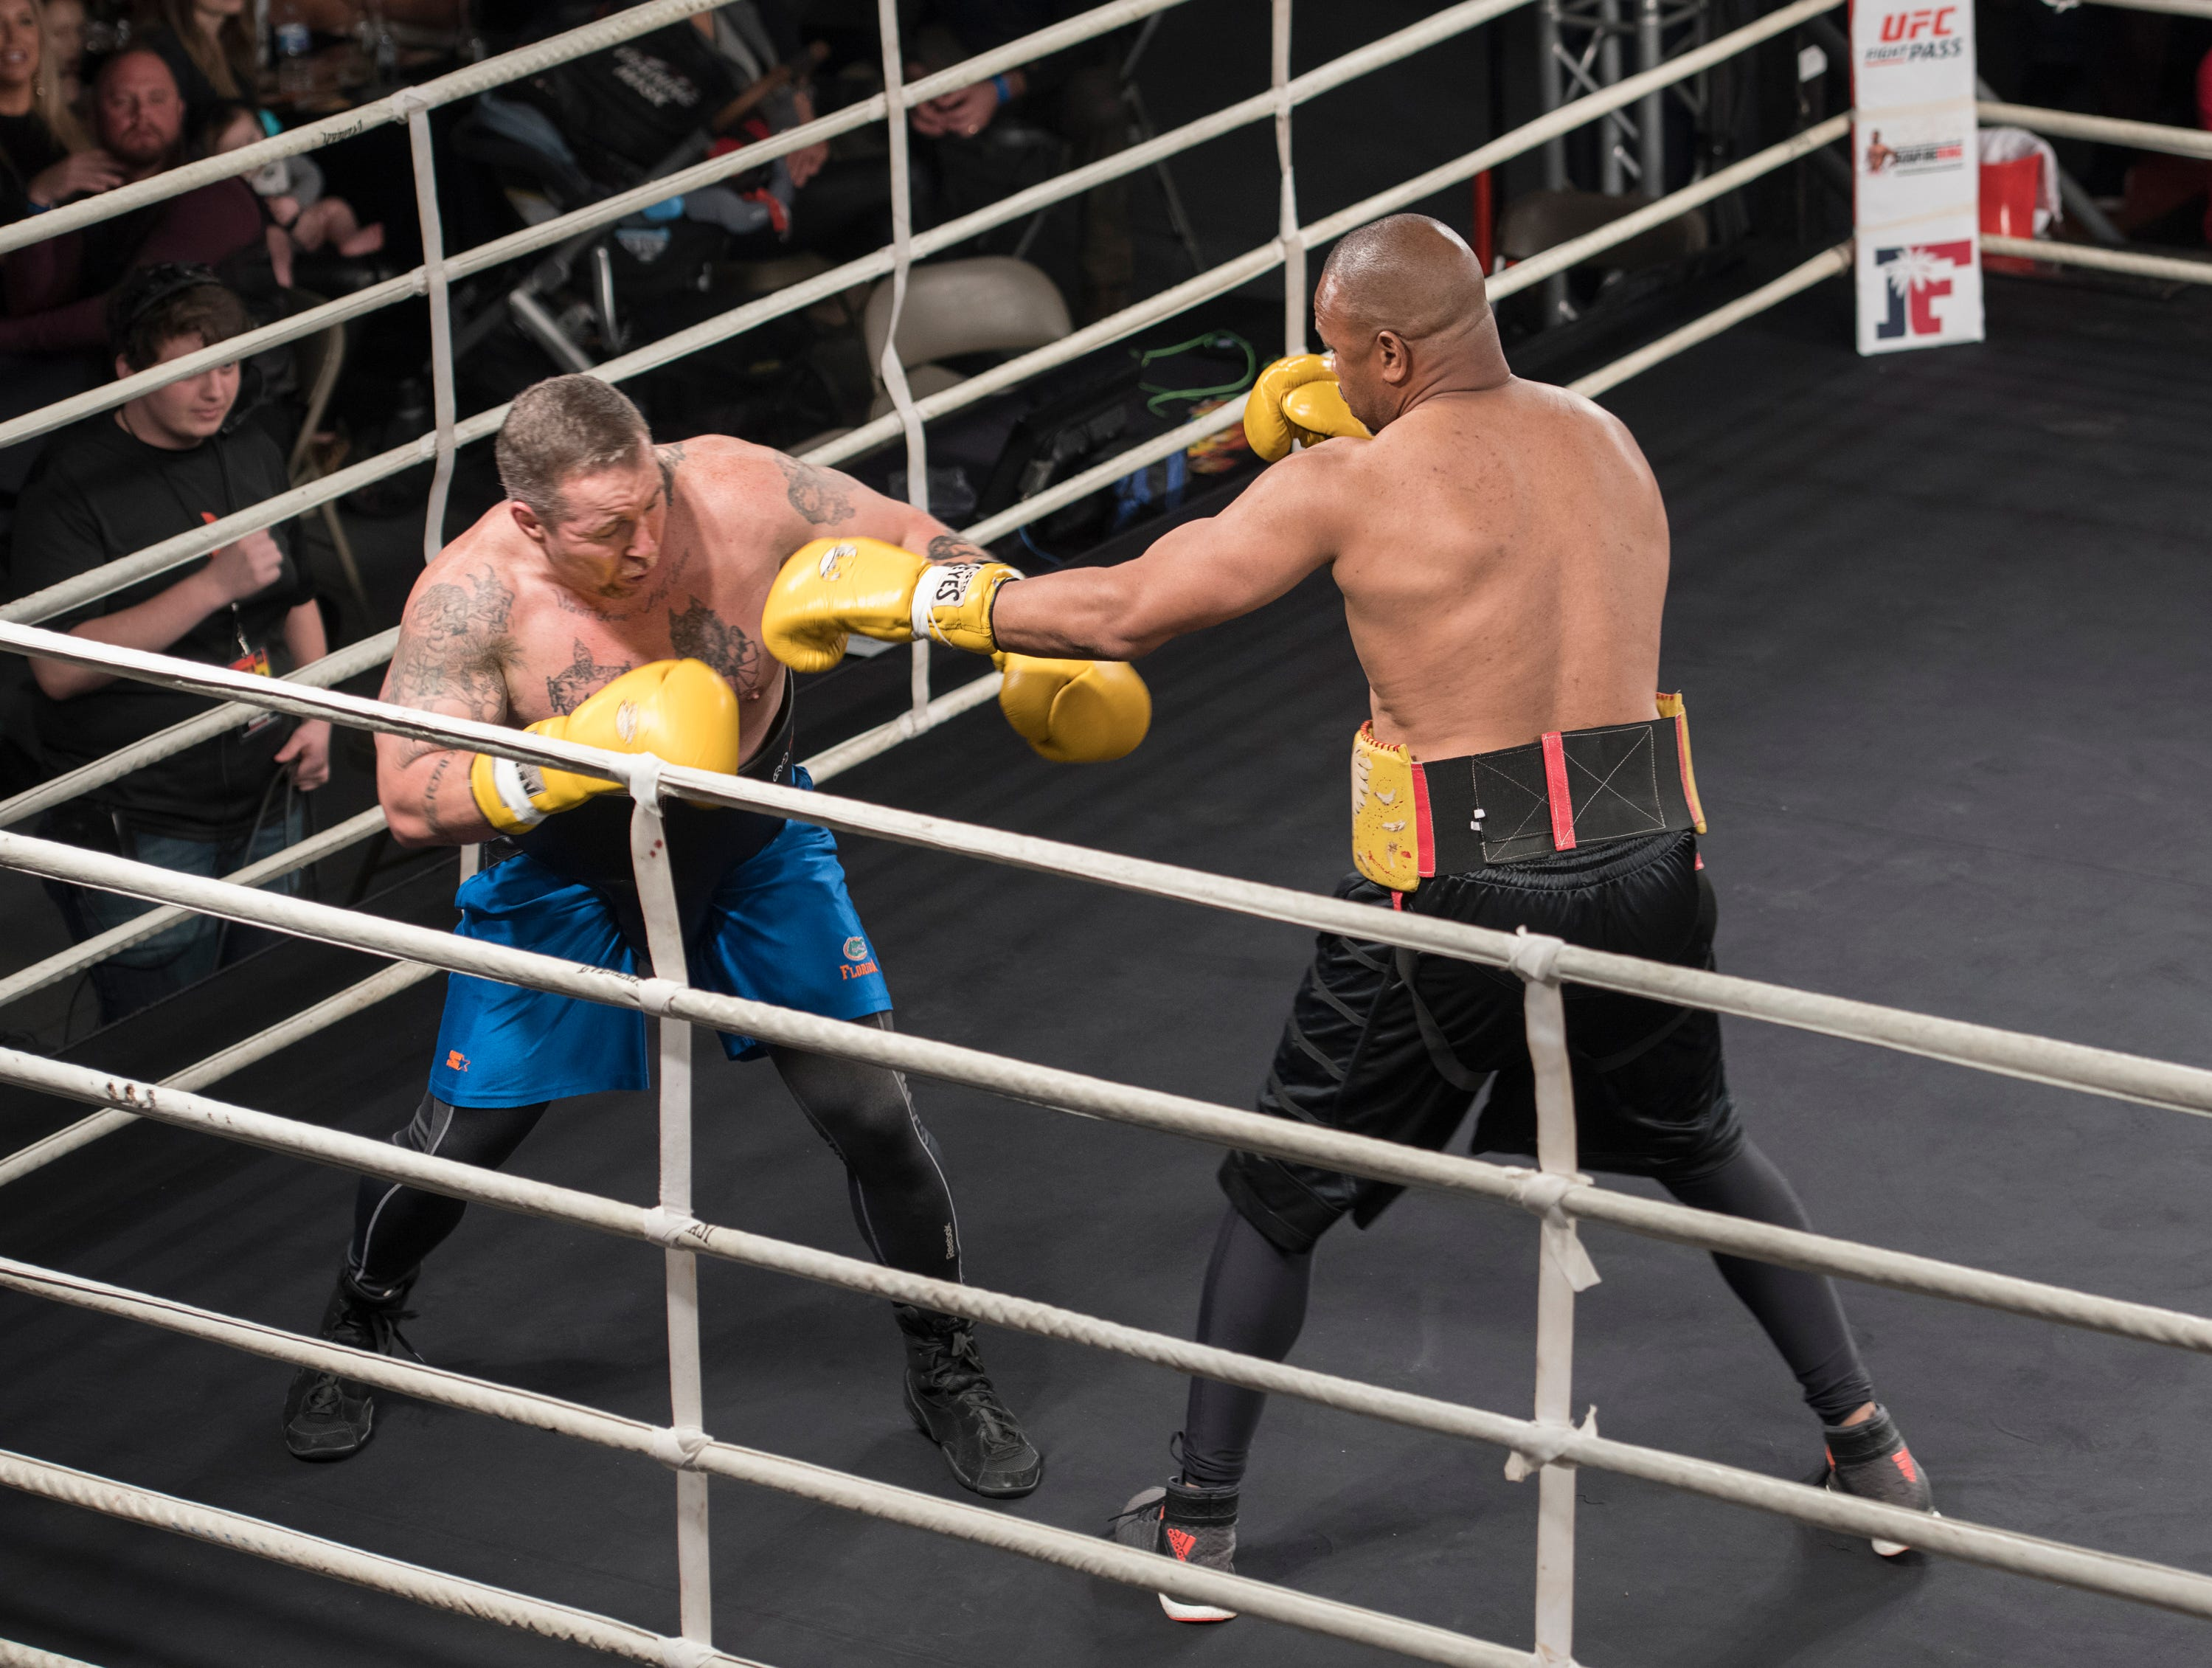 Roy Jones Jr., right, fights against Dion Rizzuto in an exhibition match during the Island Fights 52 at the Jadji Shrine in Pensacola on Thursday, February 7, 2019.